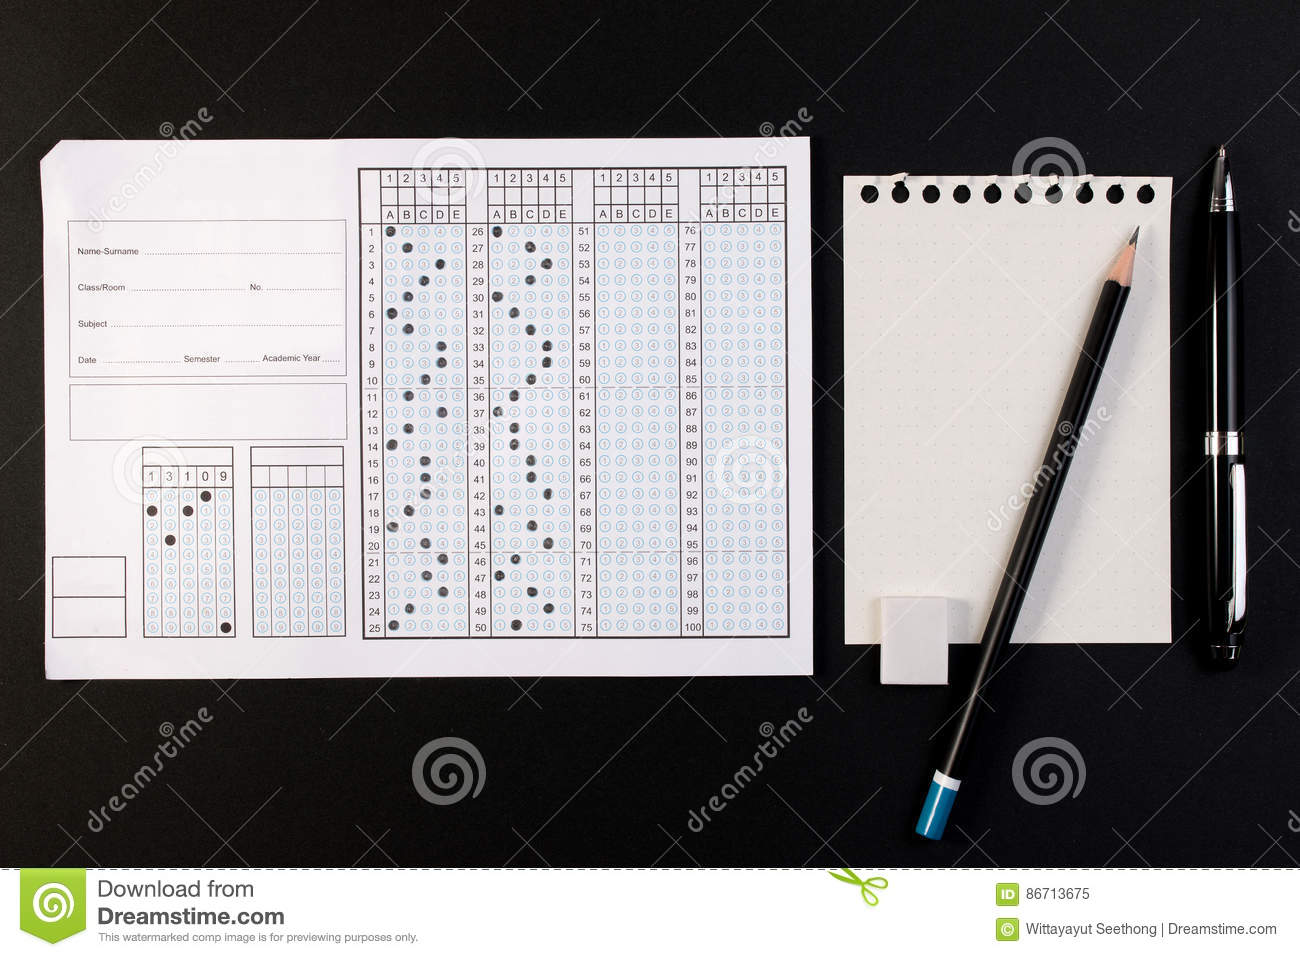 School Exam Answer Sheet And Pen  Standard Test Form Or Answer Sheet